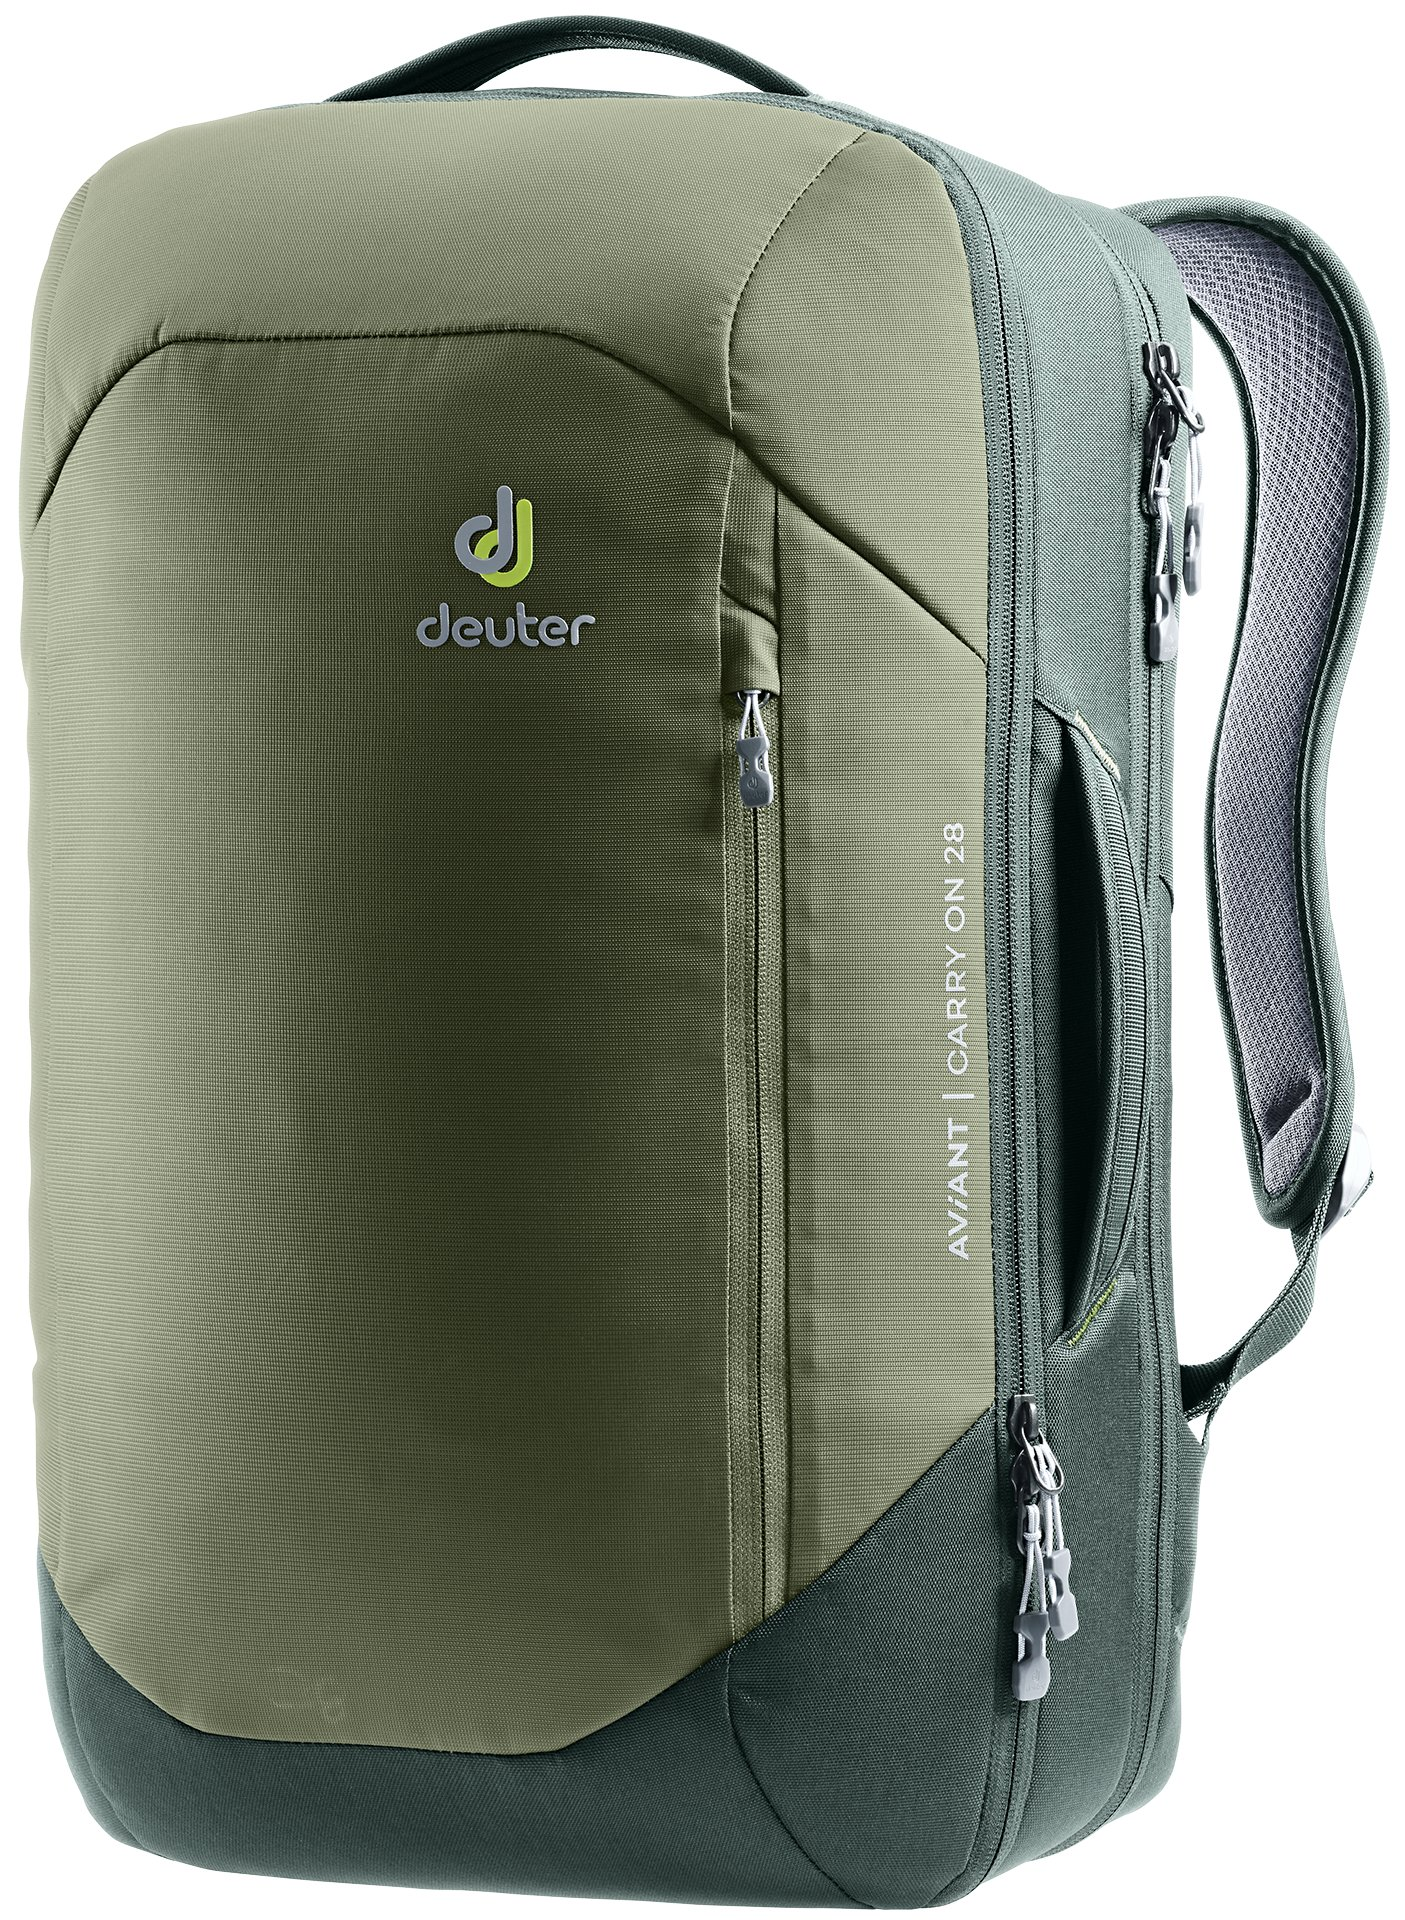 Deuter - AViANT Carry On 28, Reisetasche